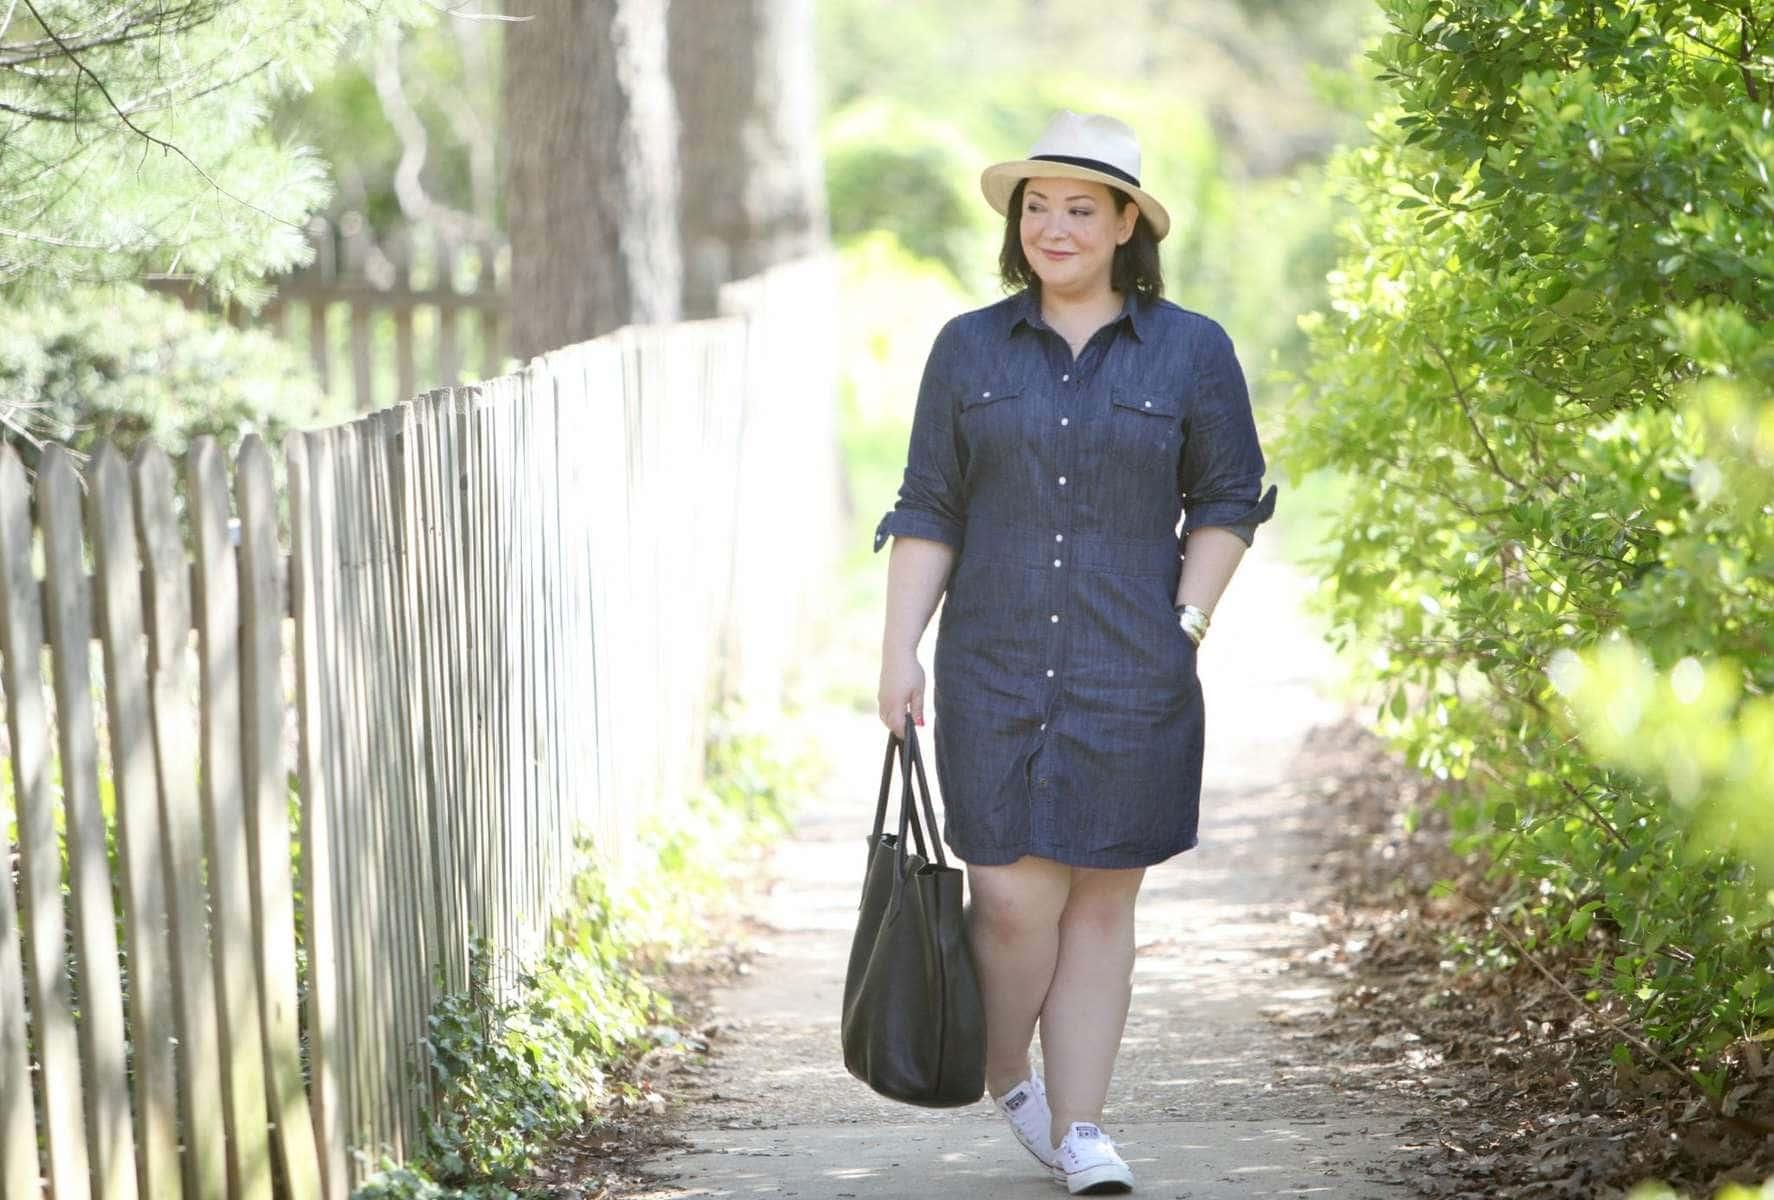 Over 40 fashion blog Wardrobe Oxygen in a Boden dress, Converse sneakers, and carrying an Adora Bags tote